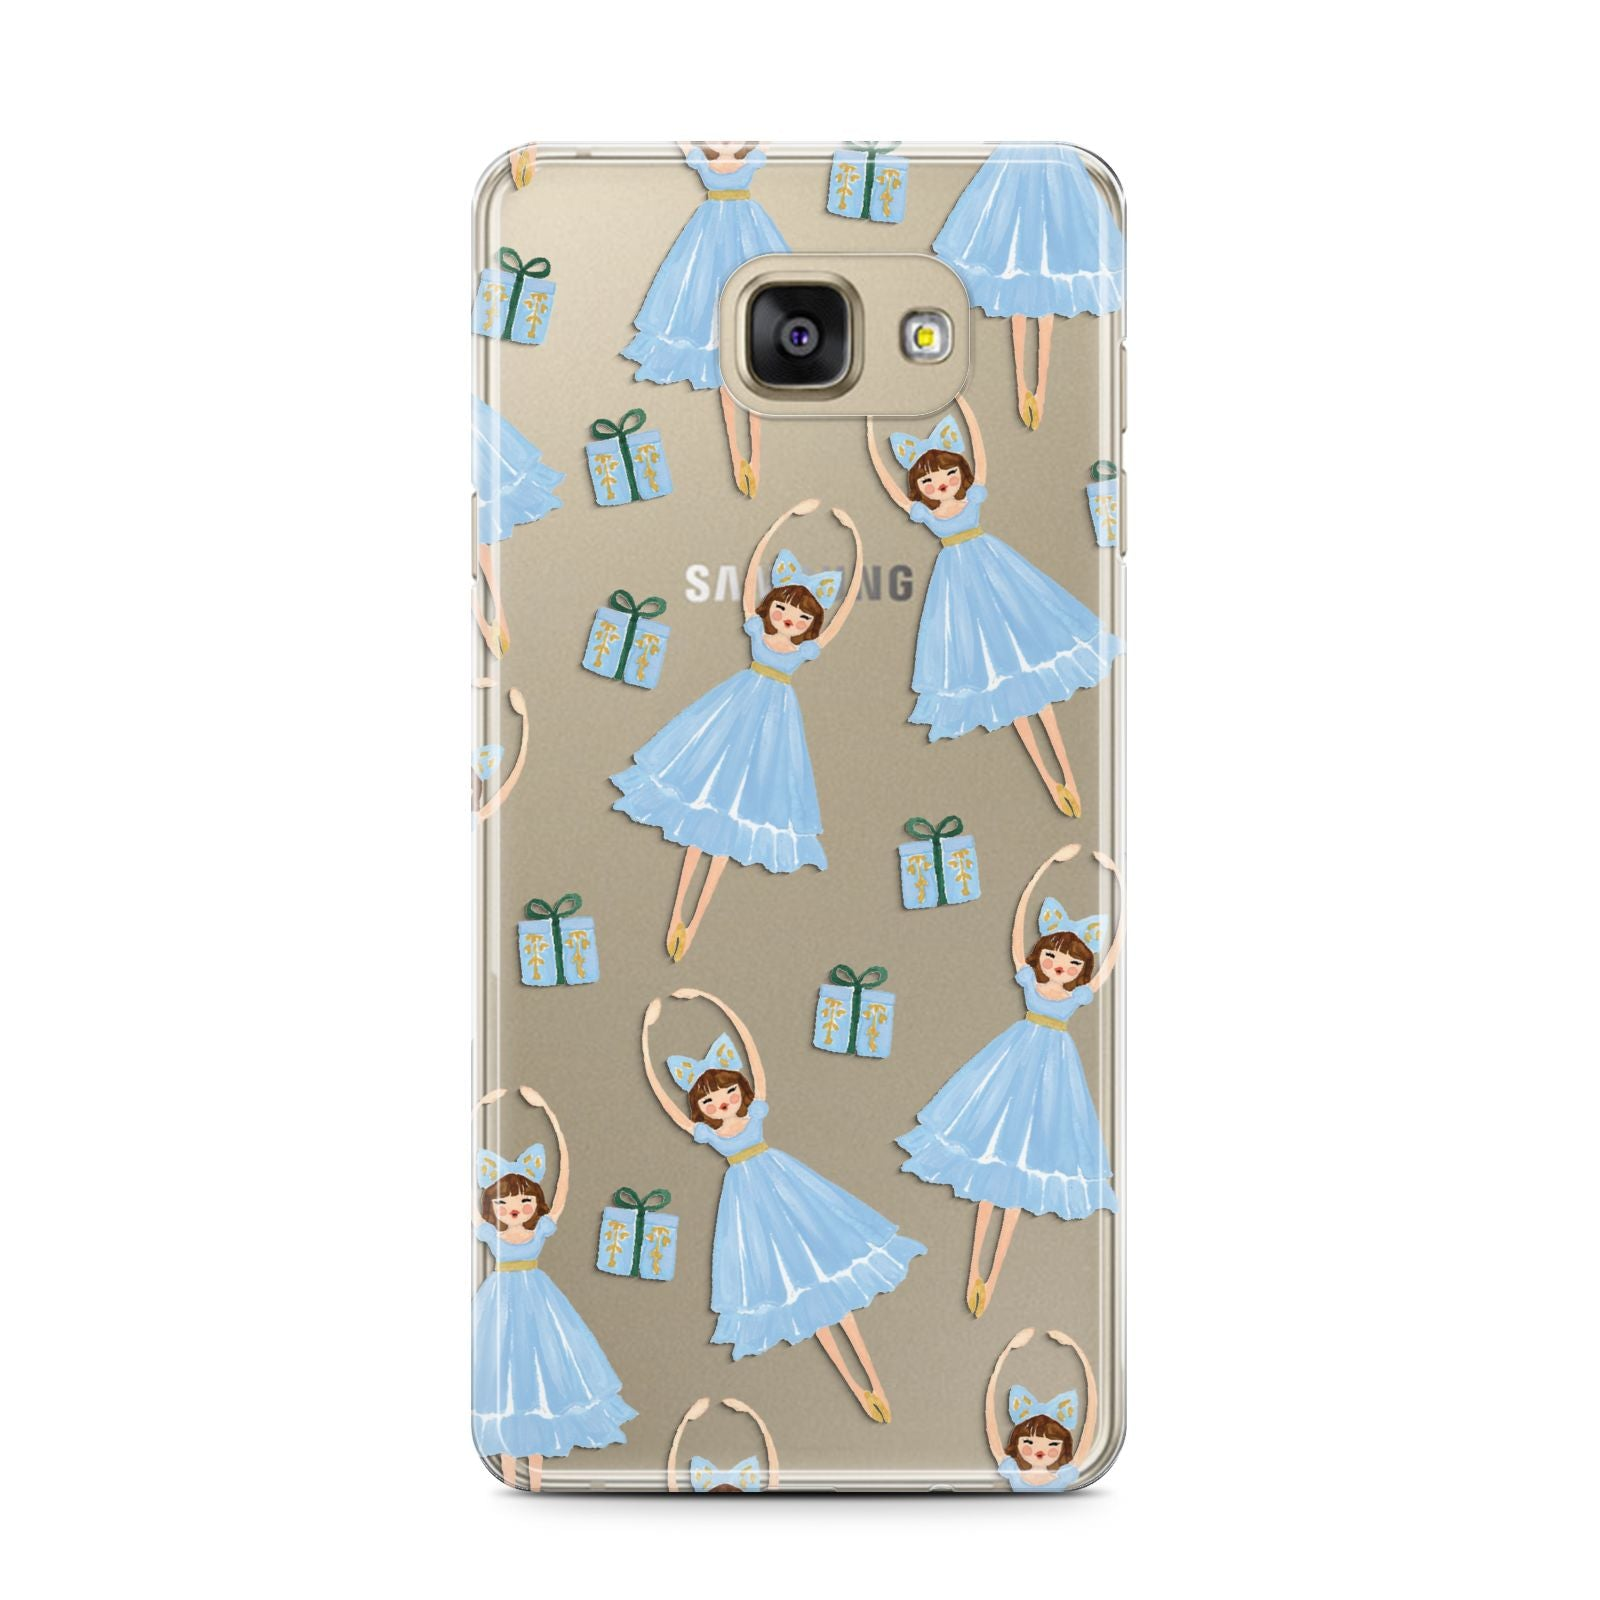 Christmas ballerina present Samsung Galaxy A7 2016 Case on gold phone